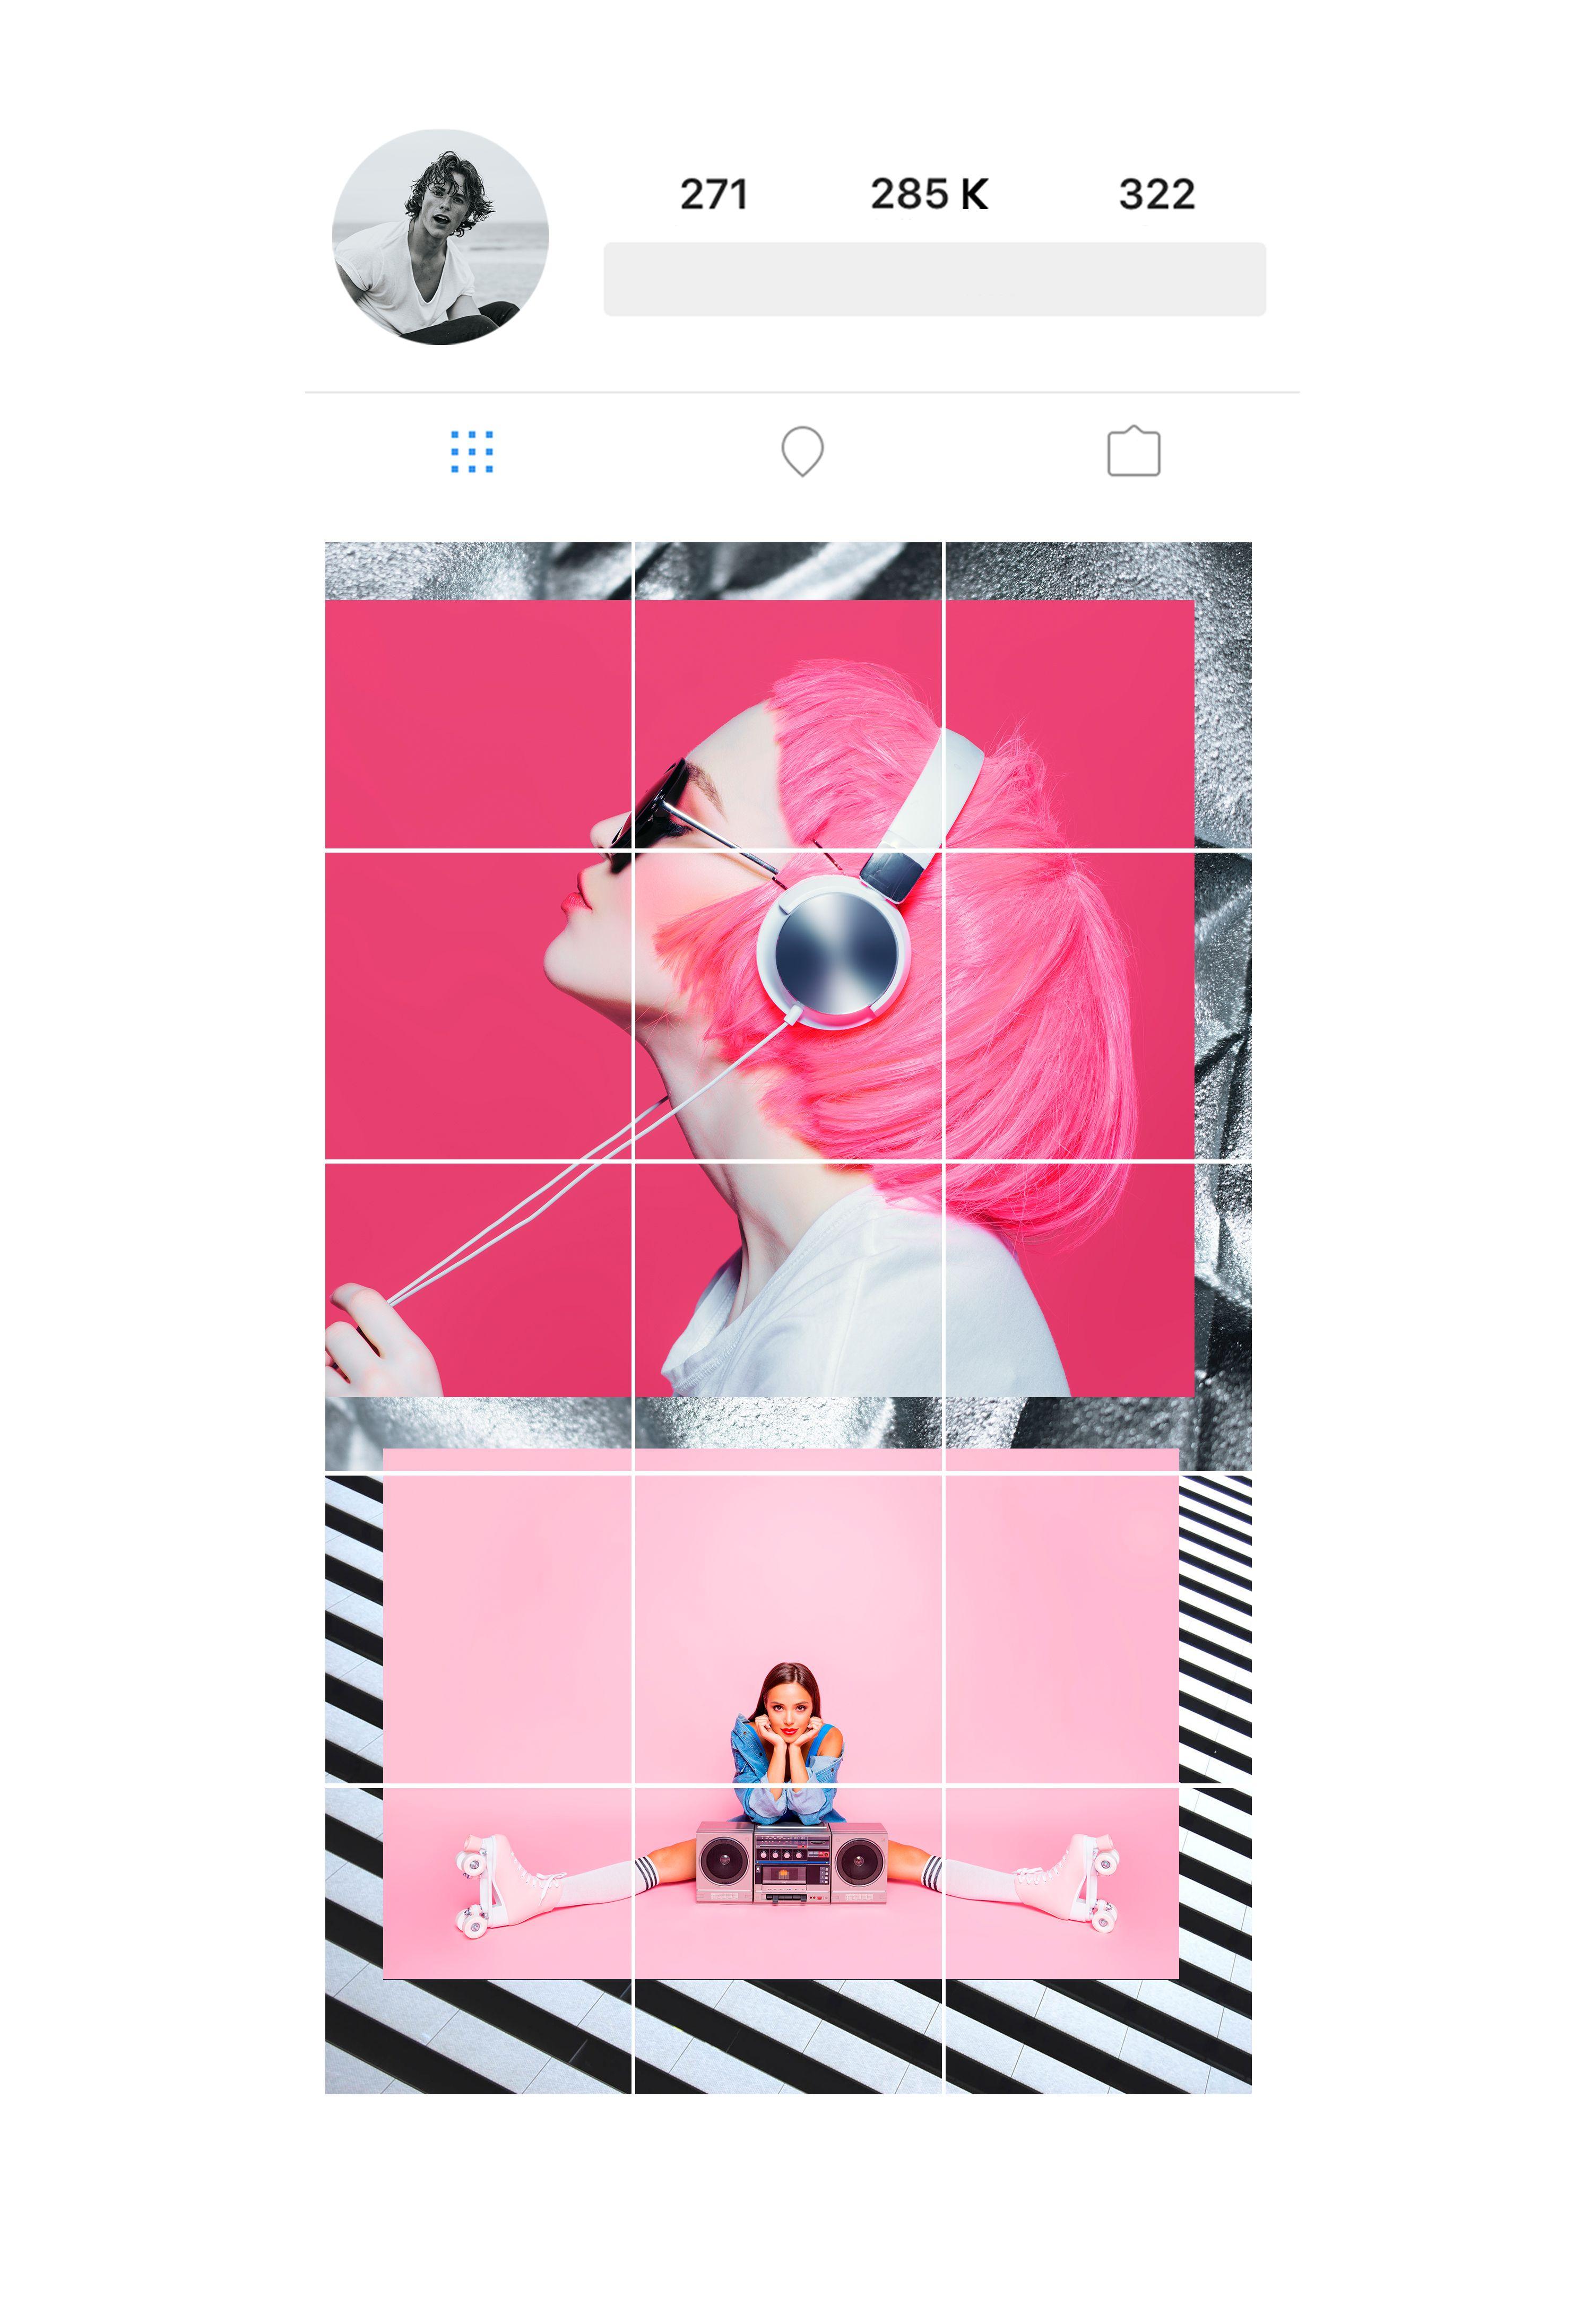 An Instagram Feed Design Idea That You Can Use For Inspiration And